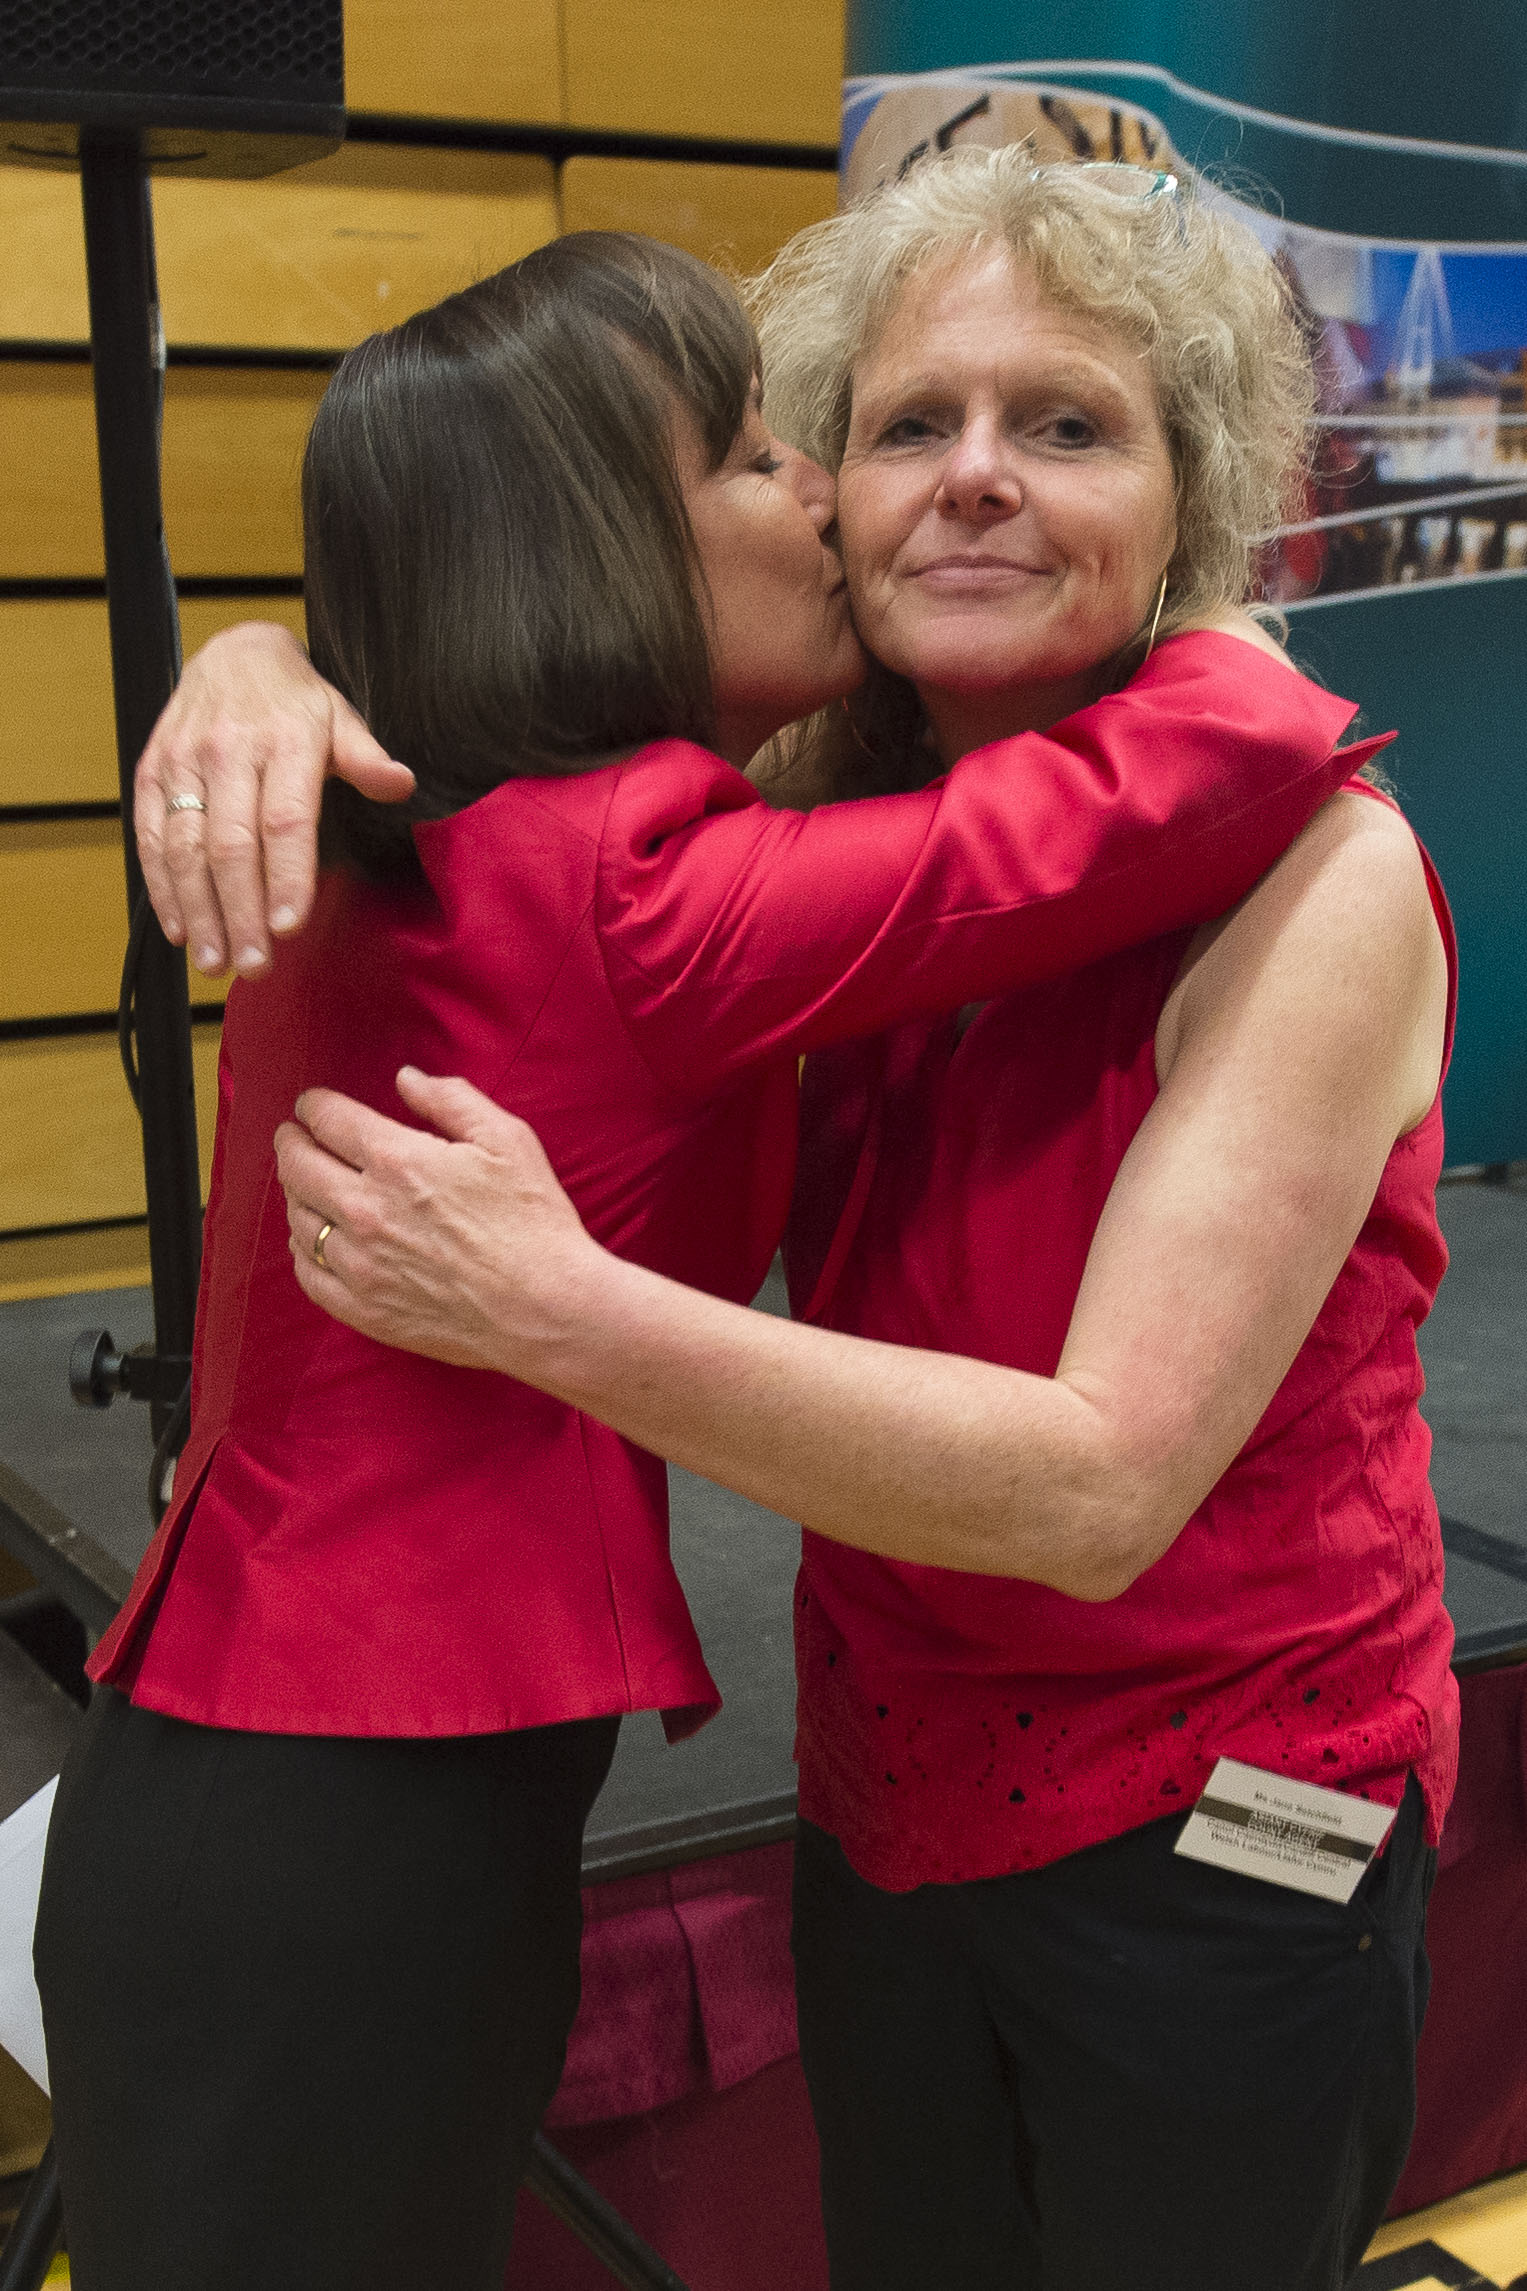 CARDIFF, UNITED KINGDOM - JUNE 09: Jo Stevens (L) kisses a party member after winning Cardiff Central for Labour, increasing her majority to more than 17,000, at the Sport Wales National Centre on June 9, 2017 in Cardiff, United Kingdom. After a snap election was called, the United Kingdom went to the polls yesterday following a closely fought election. The results from across the country are being counted and an overall result is expected in the early hours. (Photo by Matthew Horwood/Getty Images)